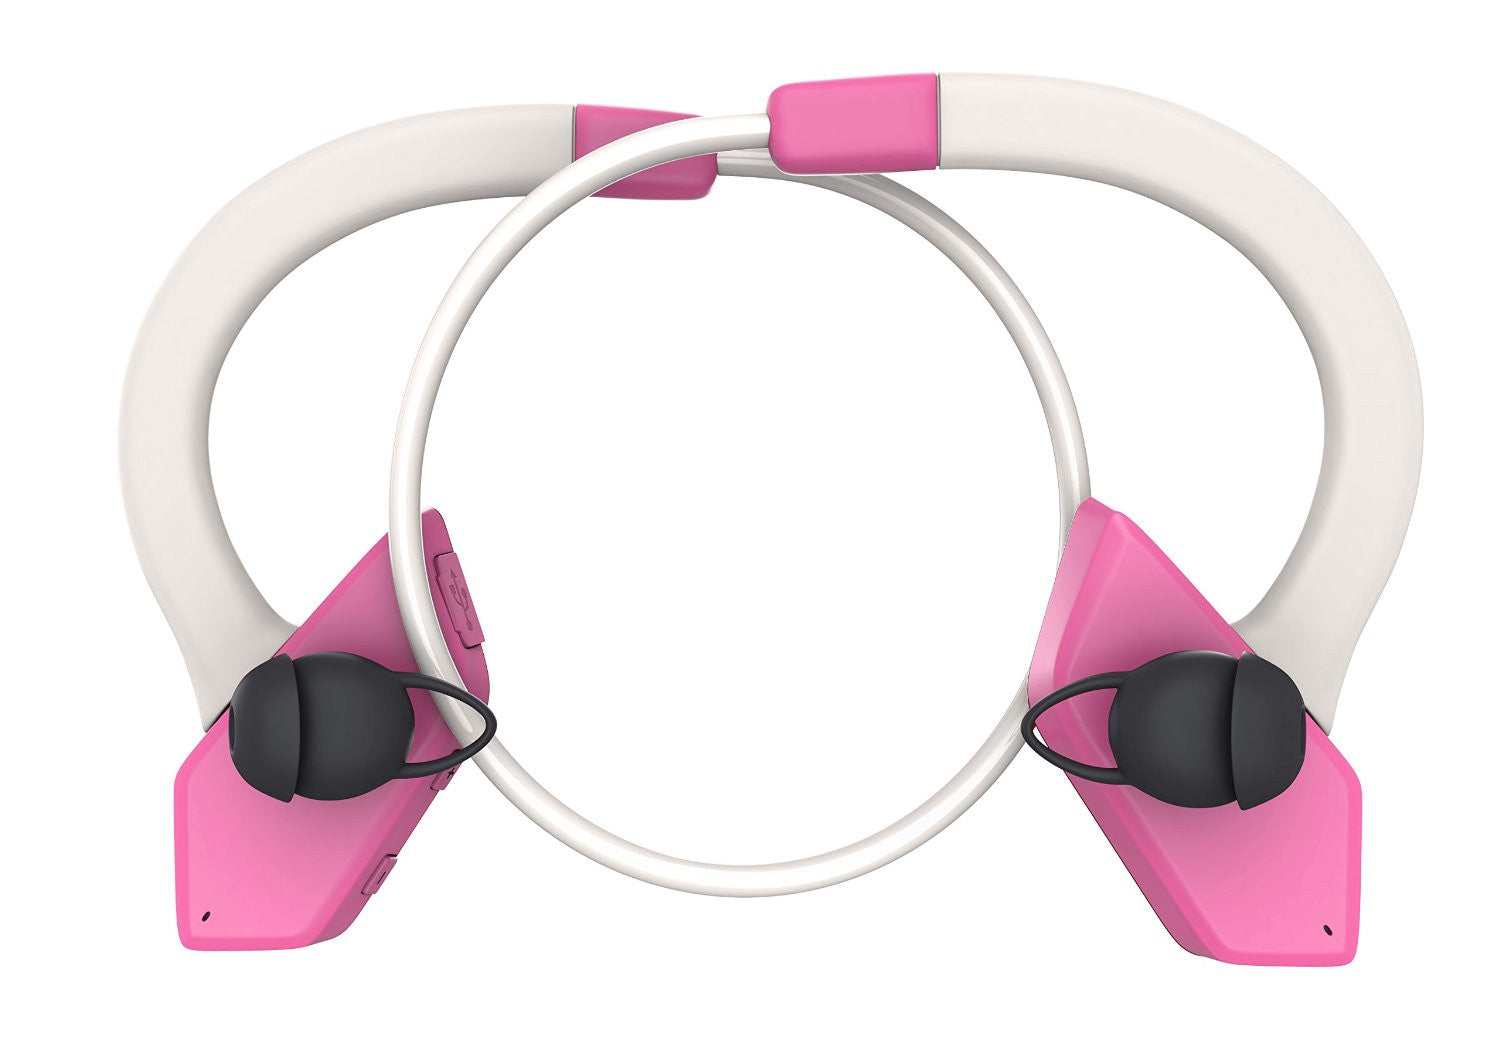 Headphones Bluetooth, Ghostek Earblades Pink Sweatproof Bluetooth 4.1 Headphones Water Resistant